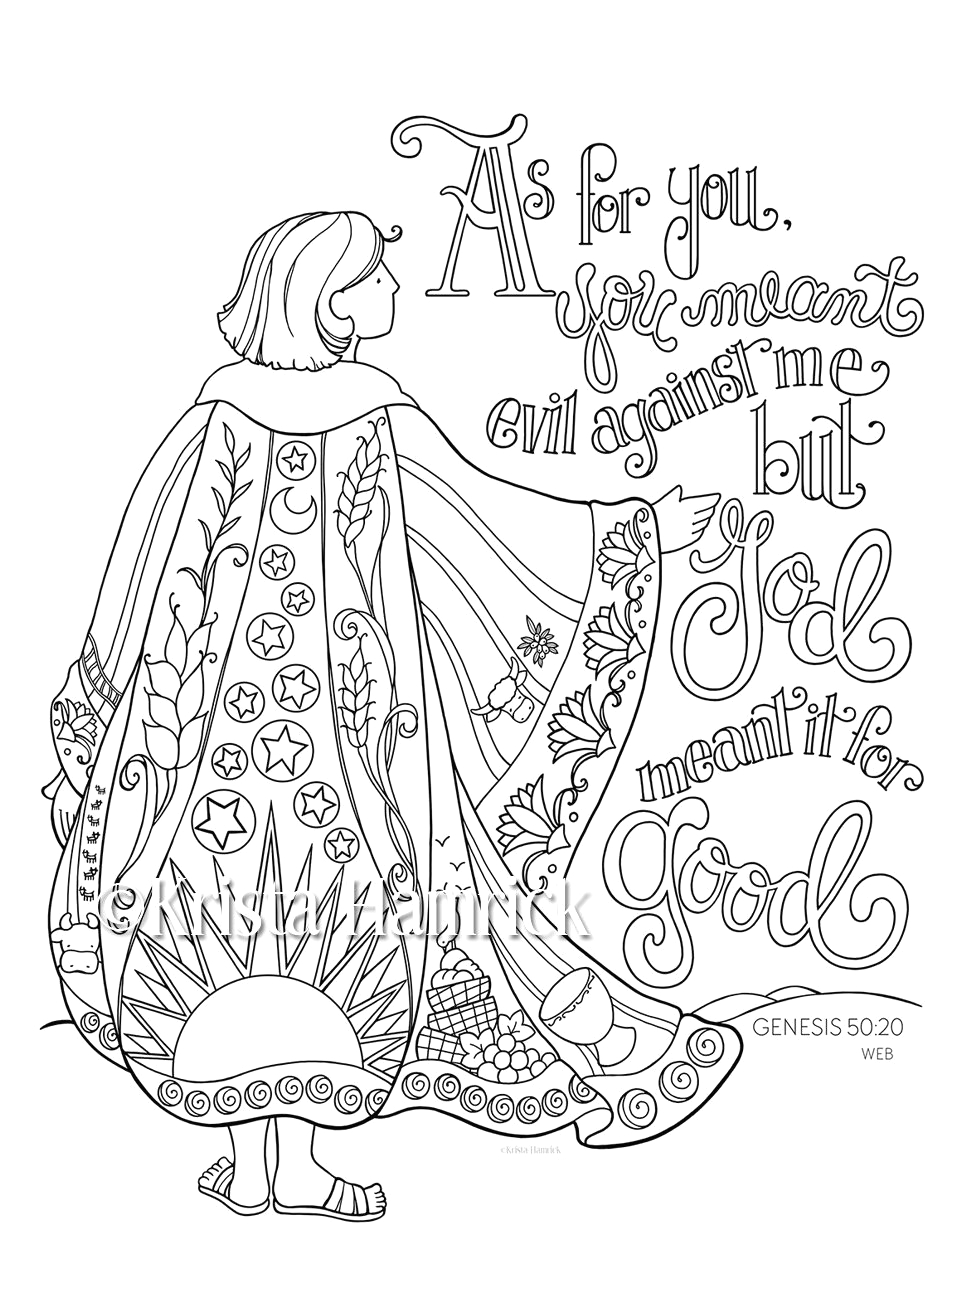 Joseph Coat Of Many Colors Coloring Page Joseph S Coat Of Many Colors Coloring Page 8 5×11 Bible